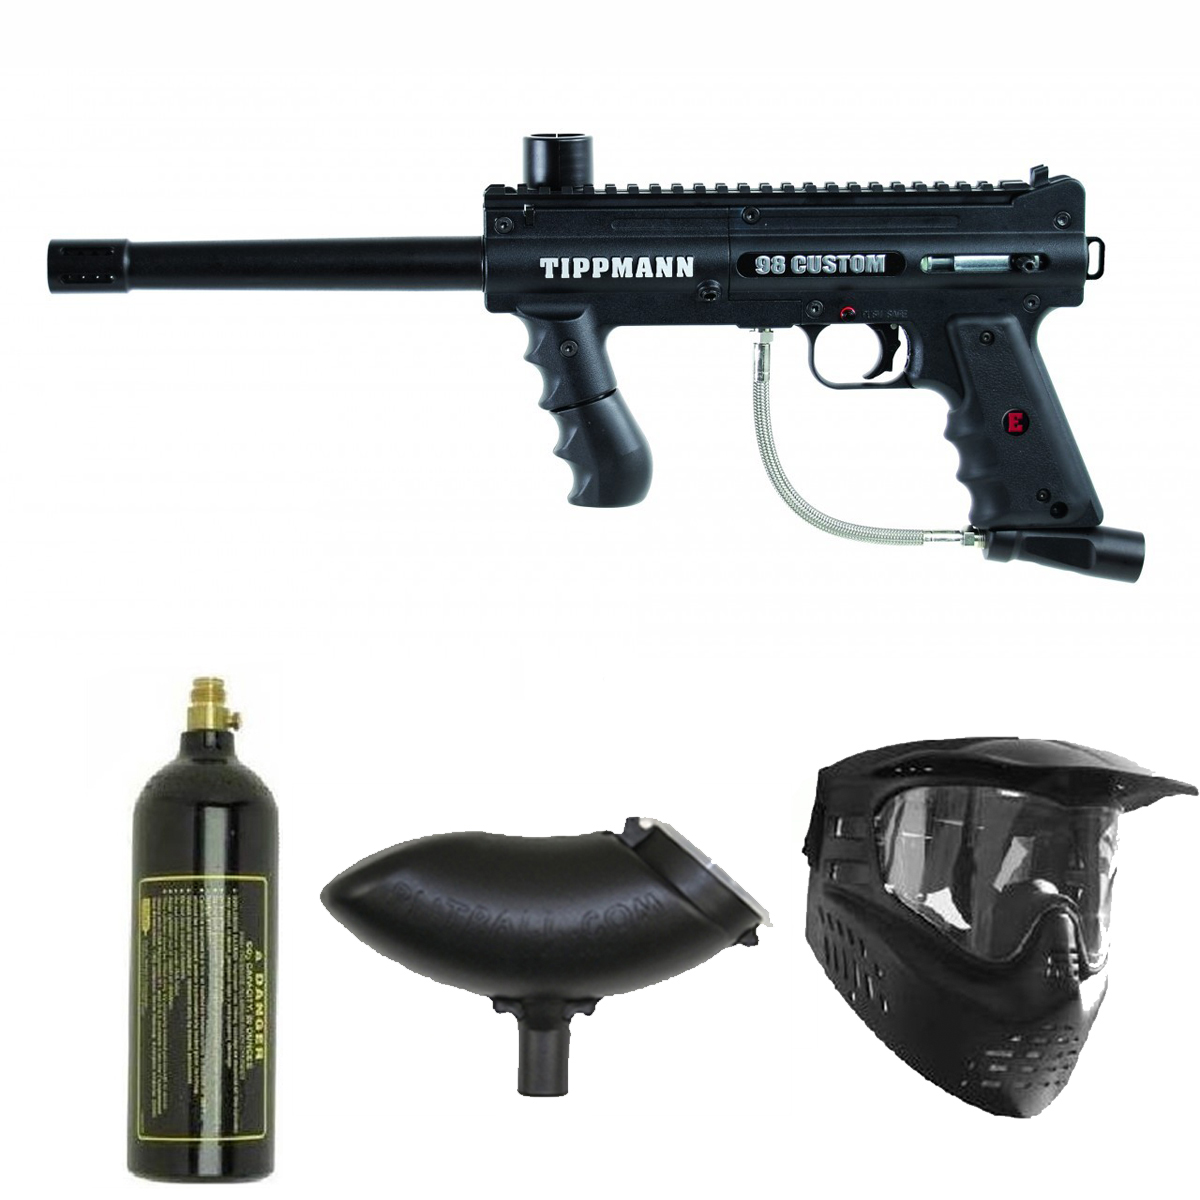 ... about Tippmann Platinum 98 Custom Paintball Marker Gun 3Skull Package